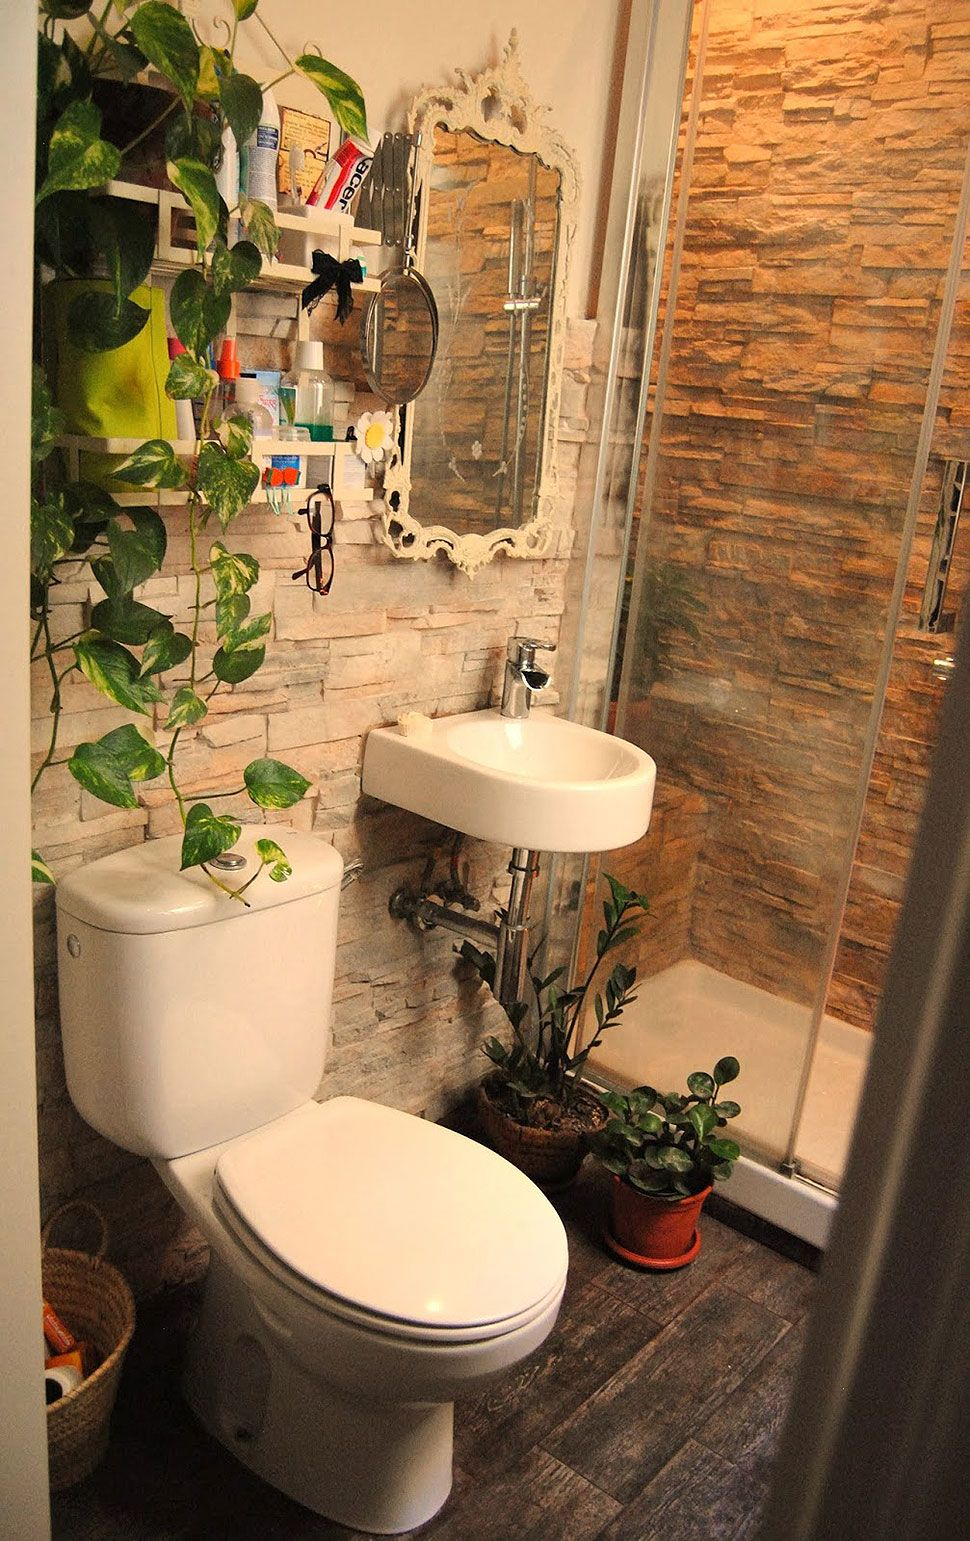 Blog Centrado En La Decoración De Casas Reales Con Los Problemas - Low cost bathrooms